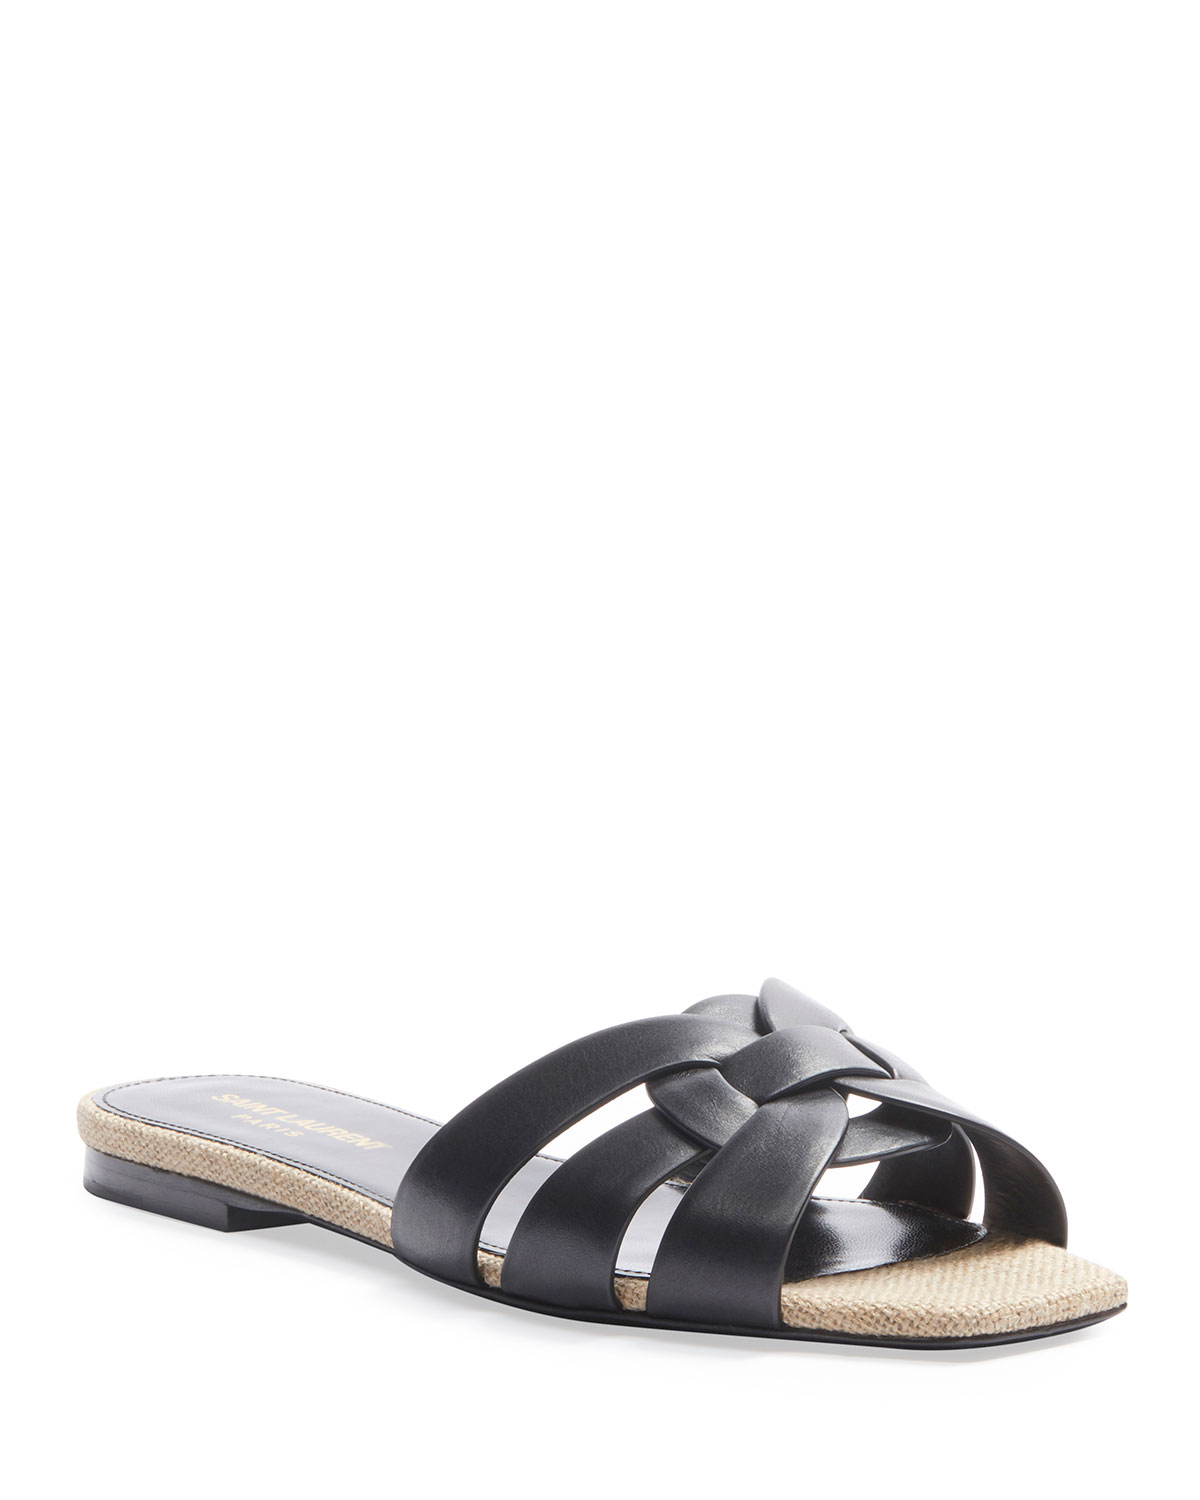 Saint Laurent Flats TRIBUTE FLAT LEATHER SLIDE SANDALS WITH ROPE FOOTBED